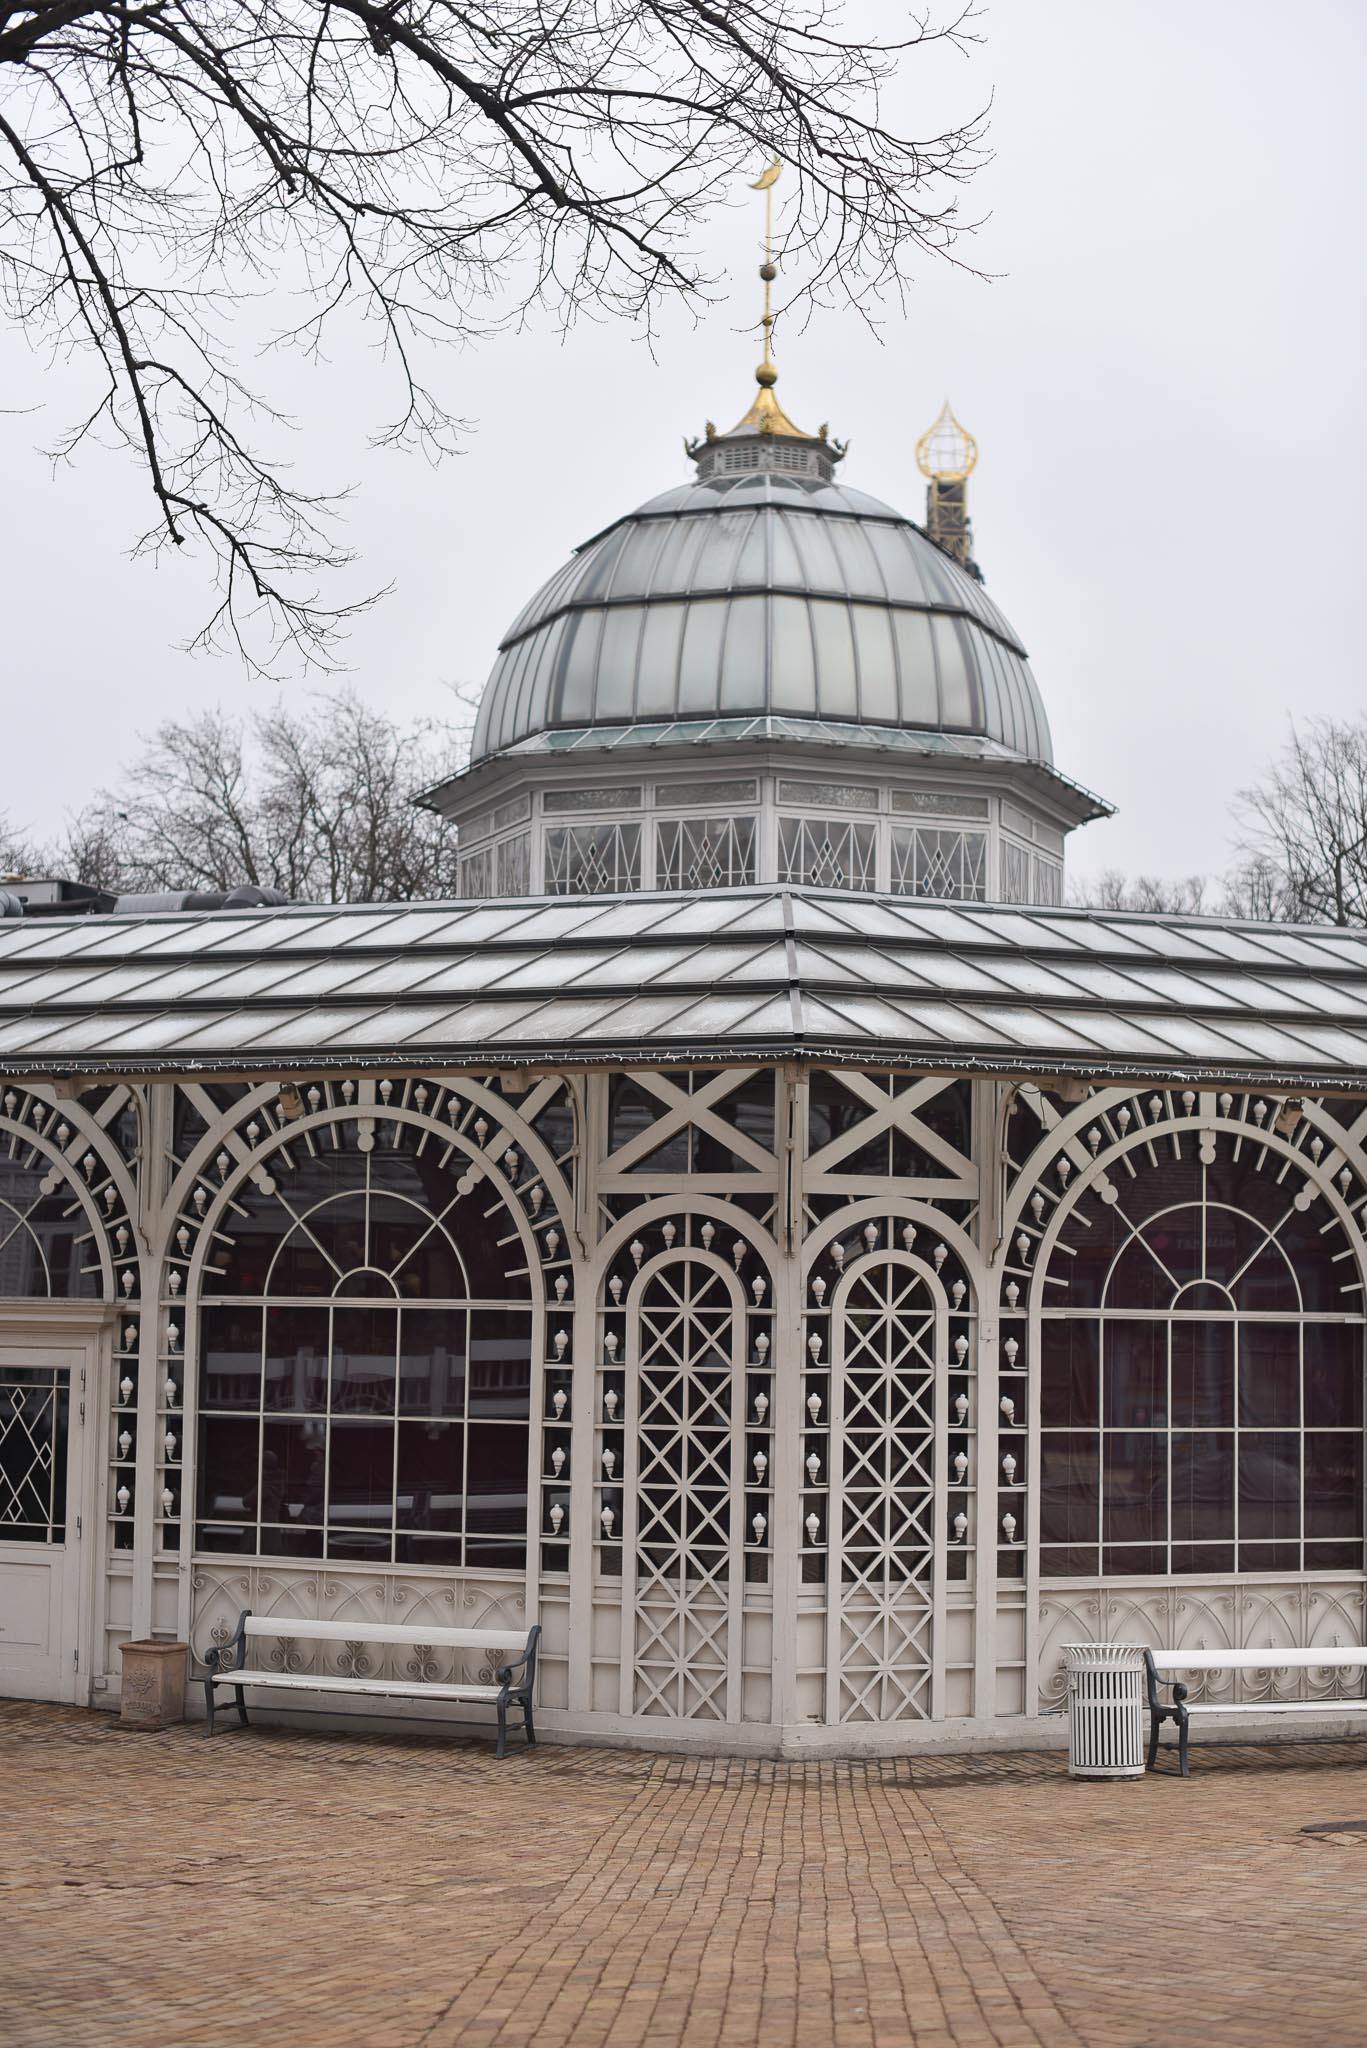 tivoli copenhague parc attraction